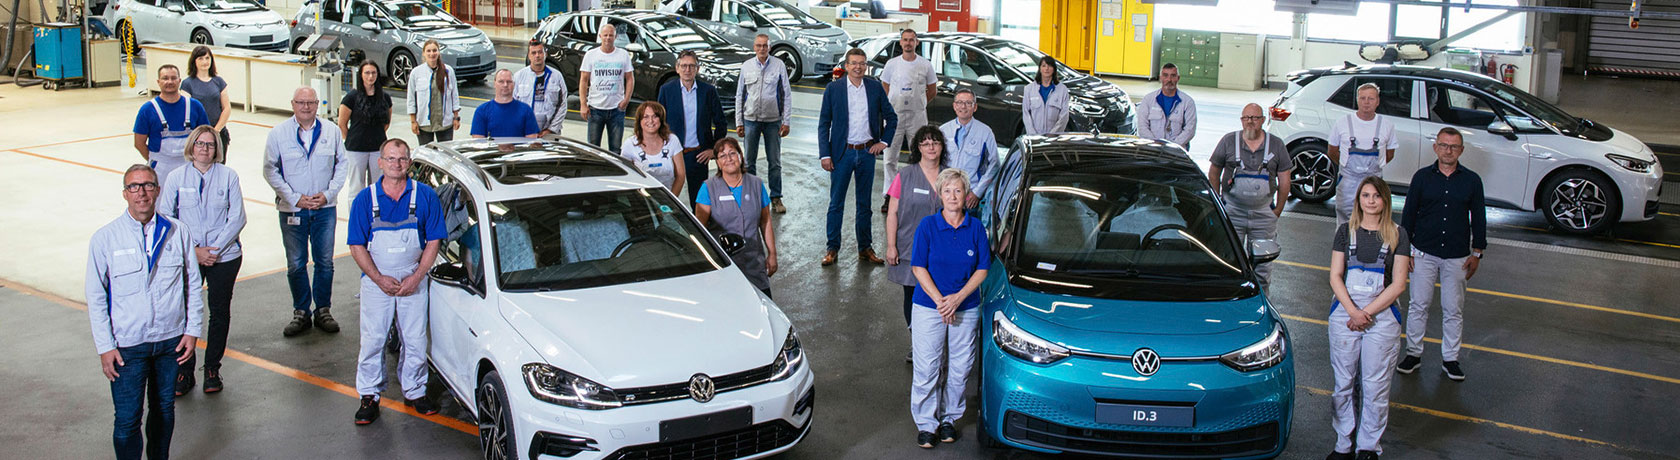 "The e-mobility revolution: Zwickau car factory is now ""100% electric"""